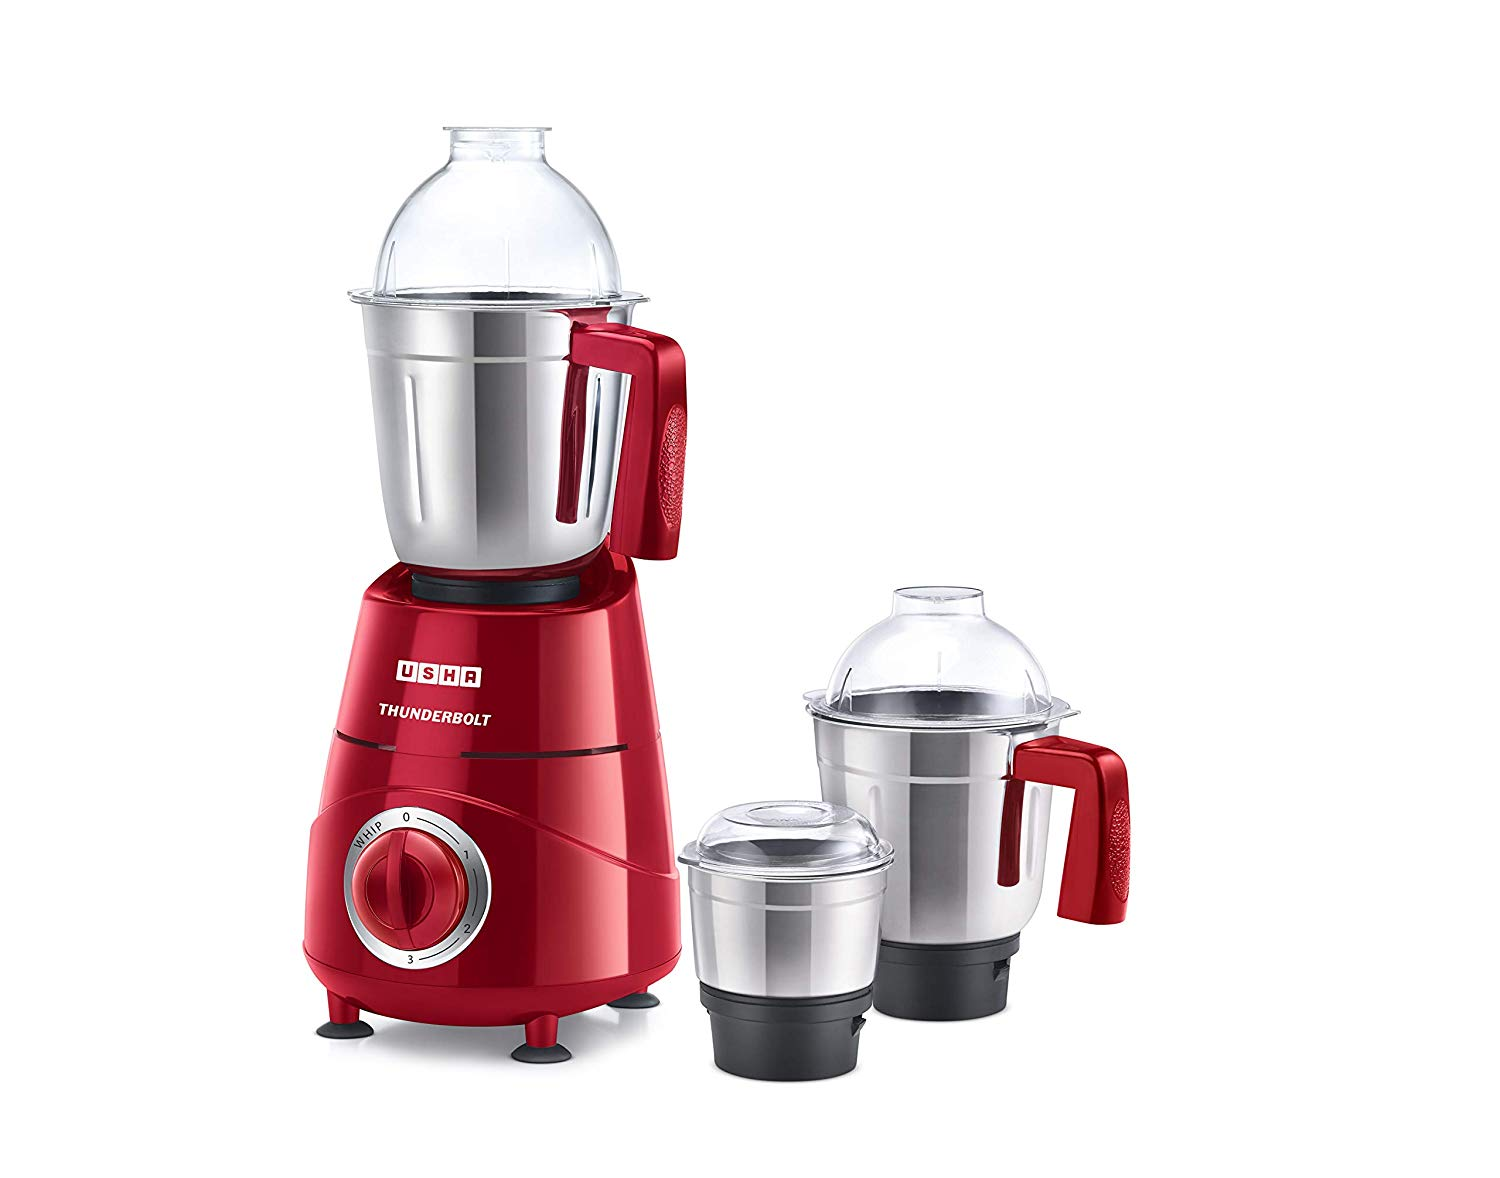 Usha Thunderbolt Mixer Grinder 800-Watt 3 Jars With Copper Motor(Red)